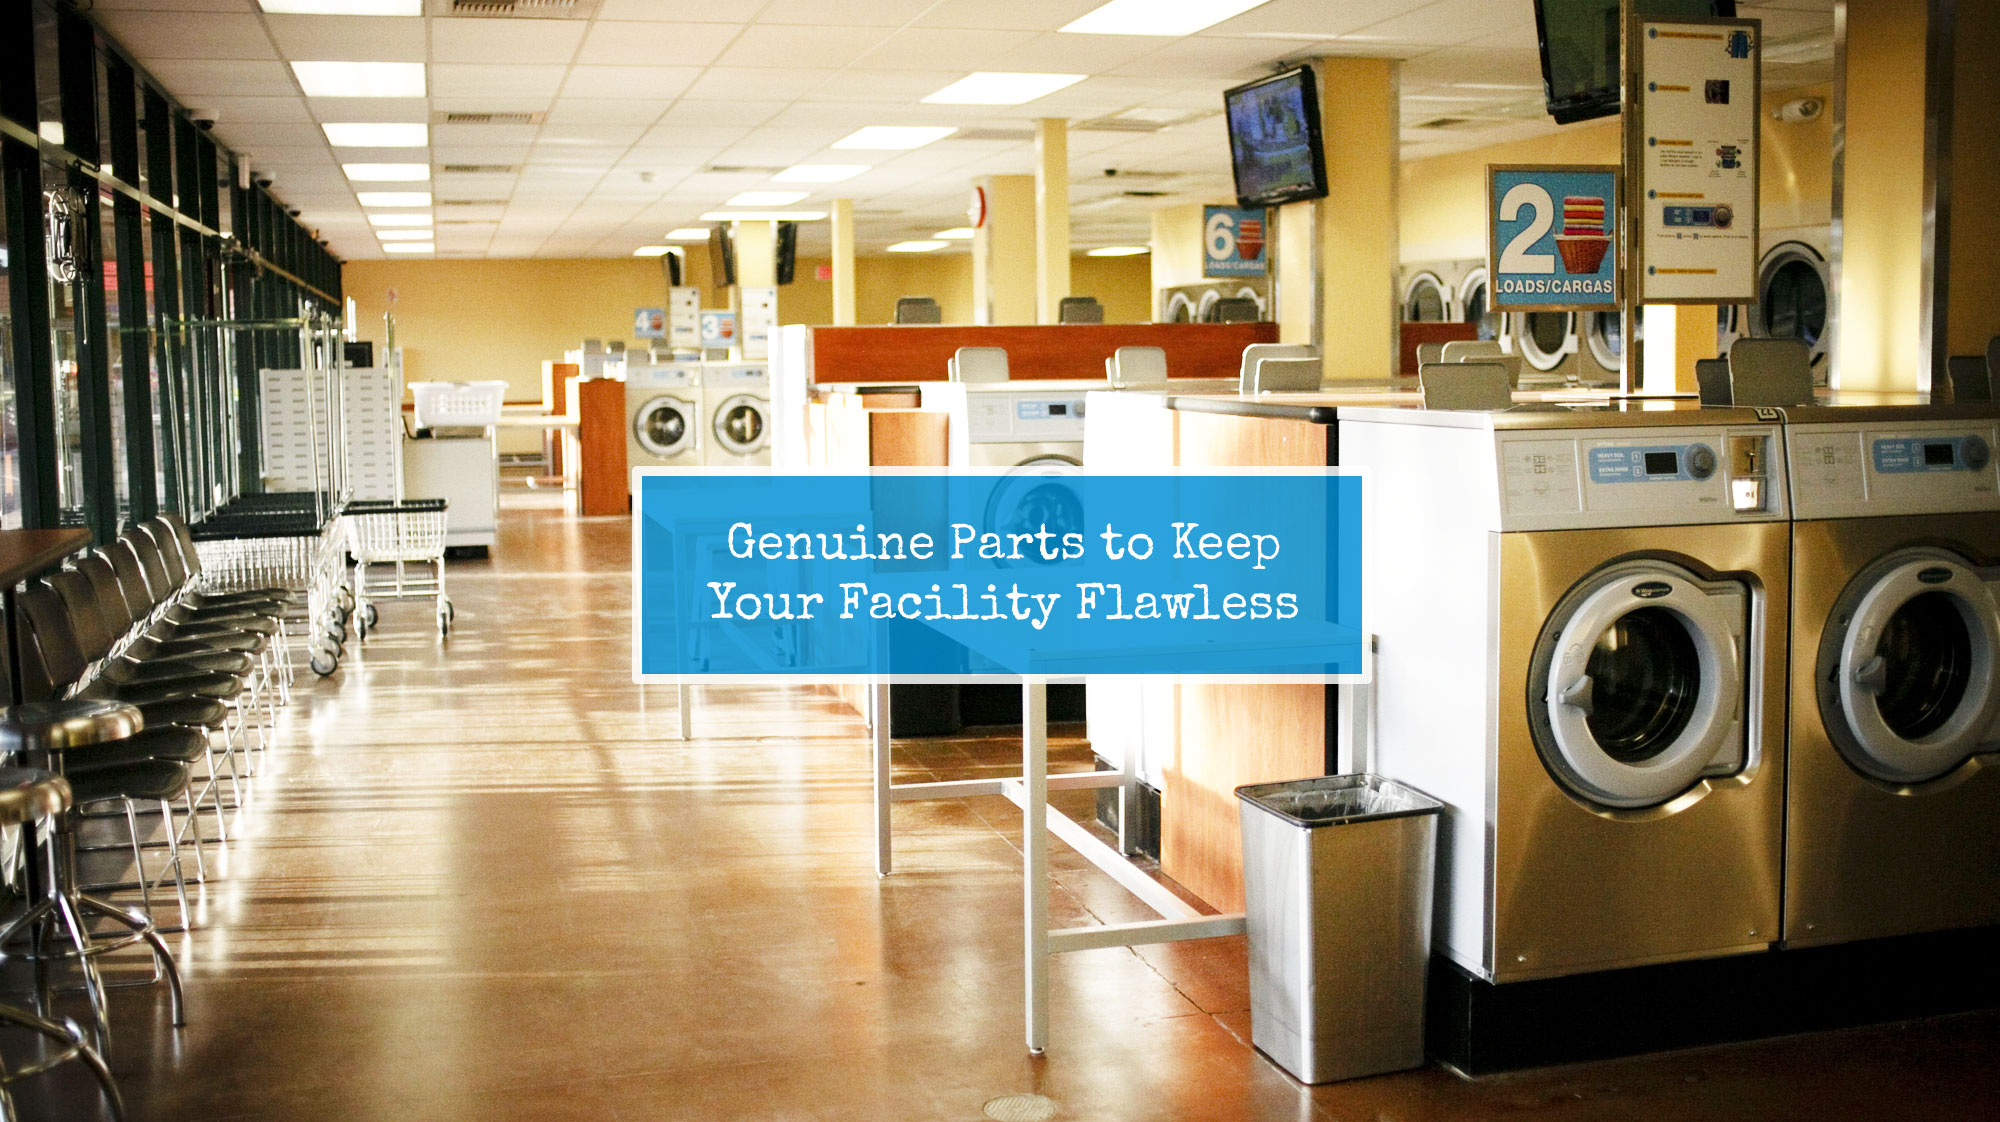 Genuine Parts to Keep Your Facility Flawless